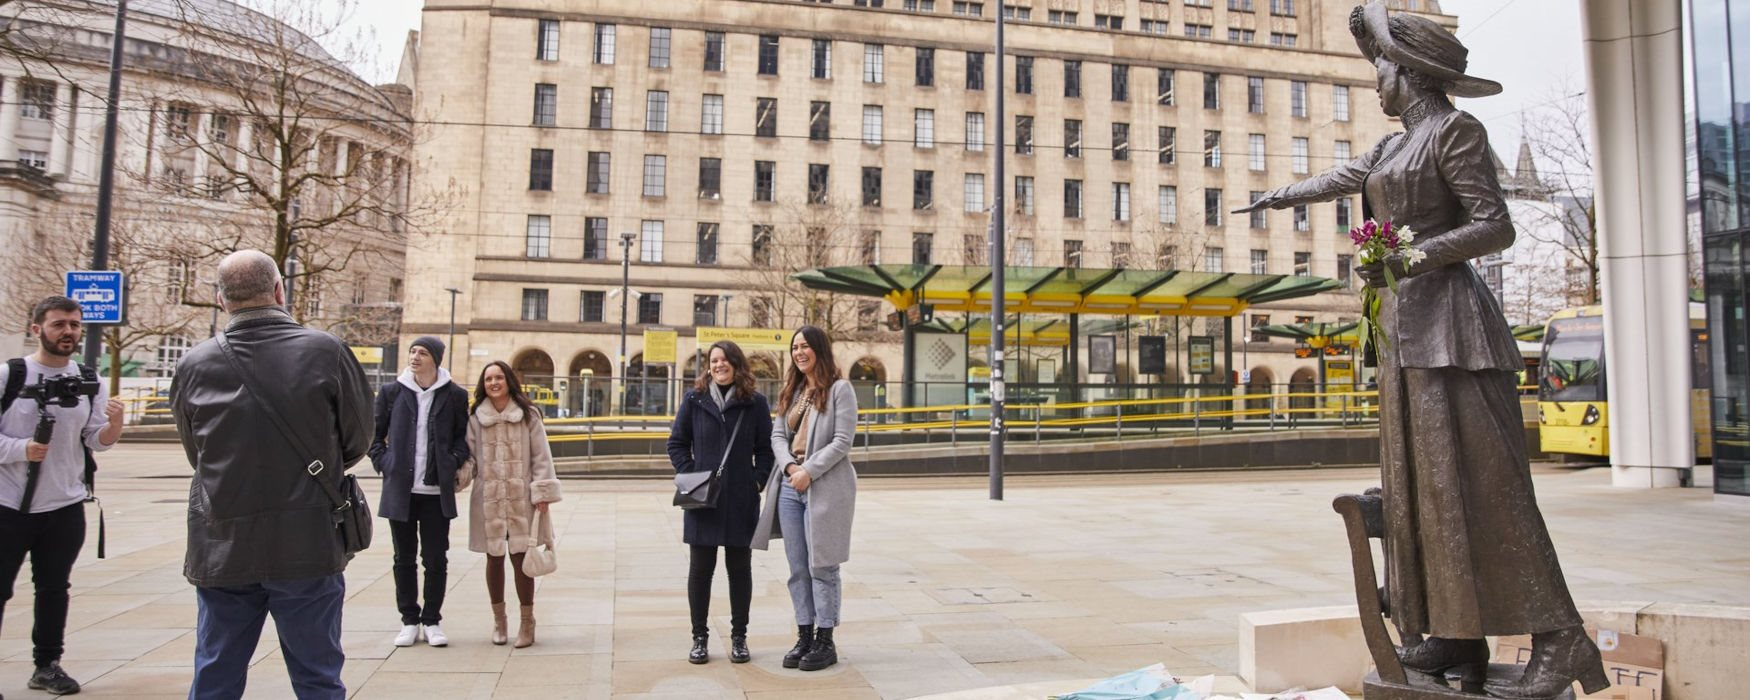 Guided tour in St Peters Square, Manchester